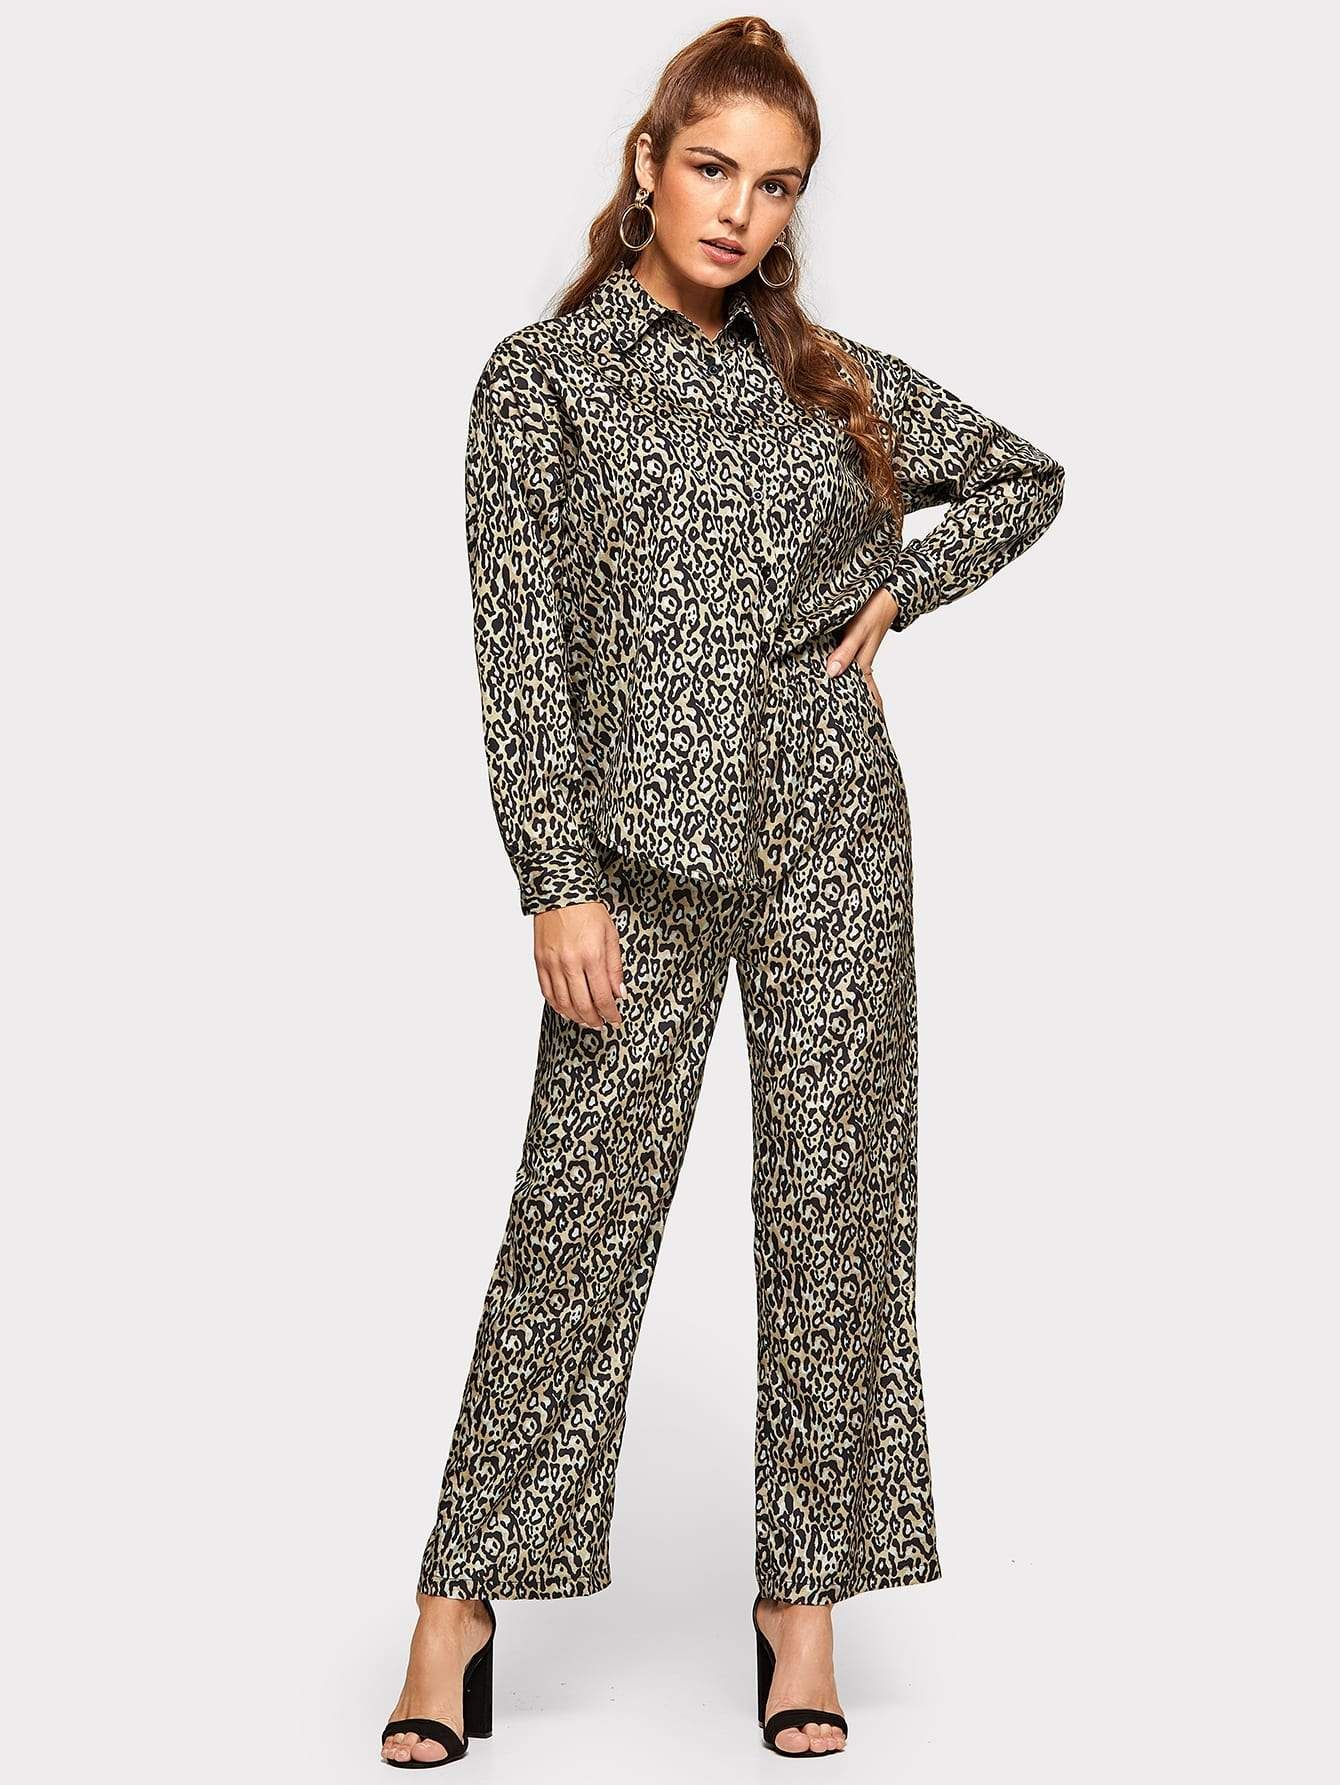 c0041b9682d leopard print blouse with pants.  two-pieceoutfits  co-ords  women